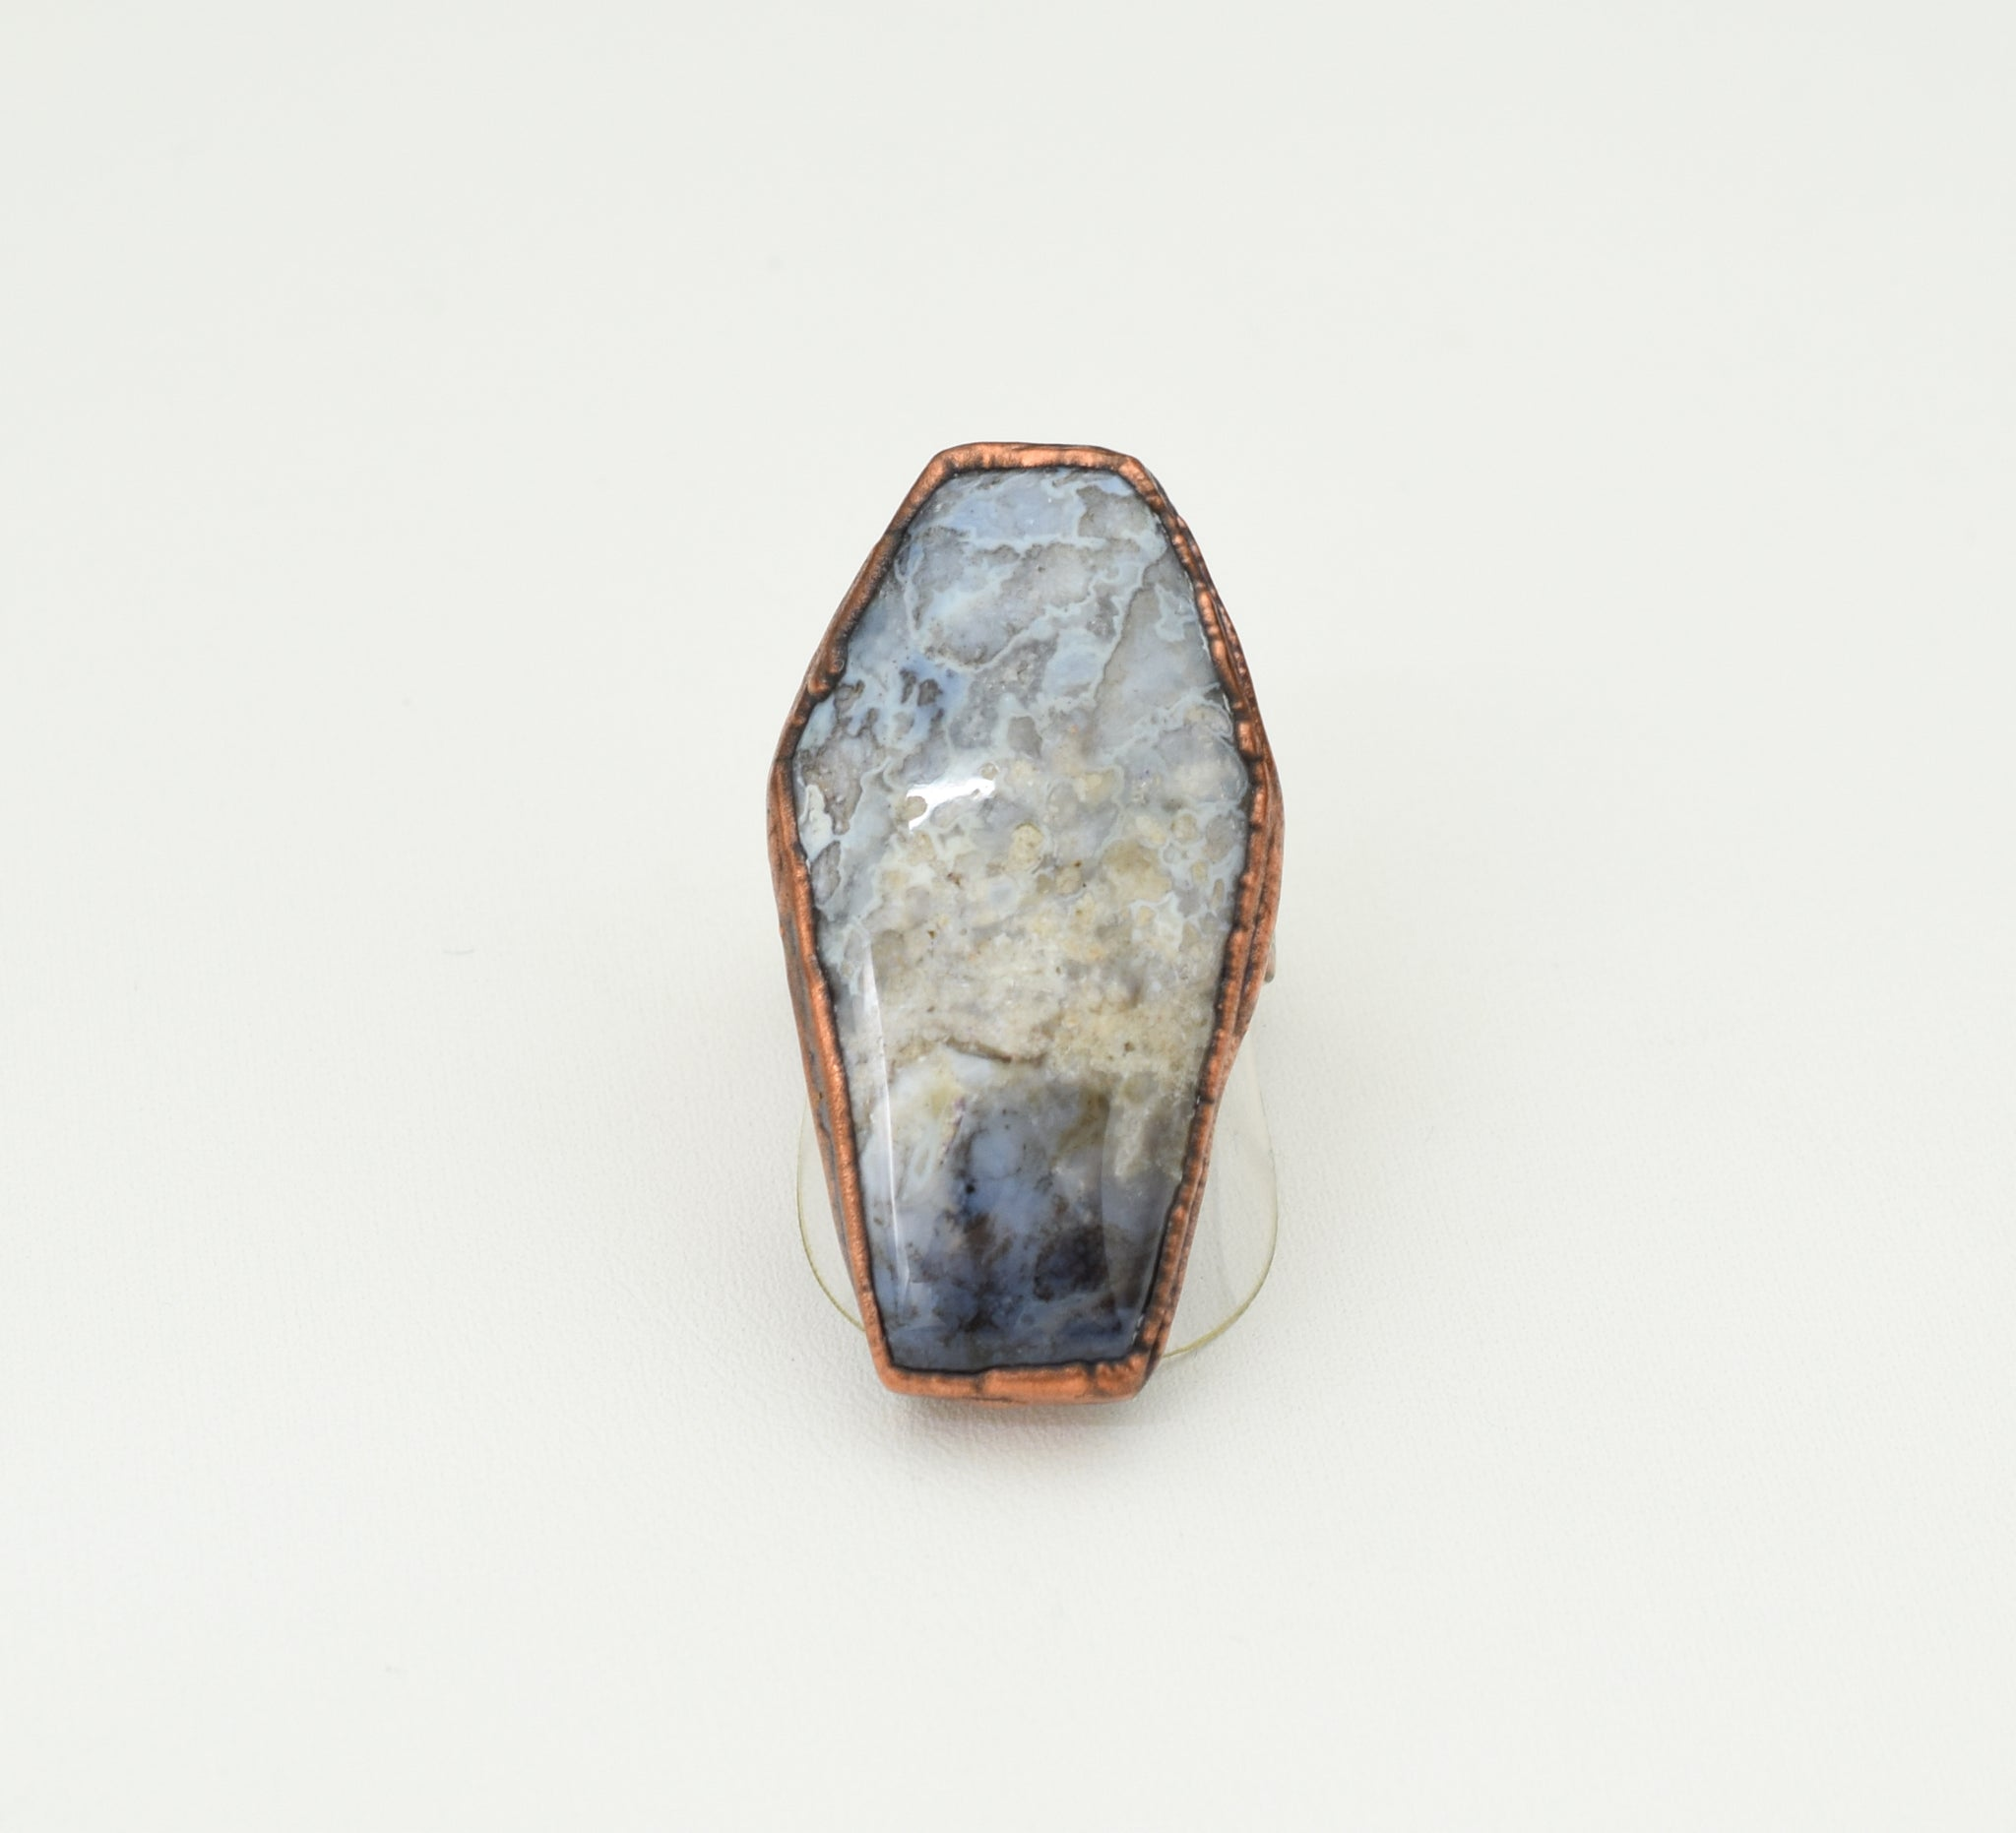 Graveyard Plume Agate Coffin Ring Size 6-1/2 - 7